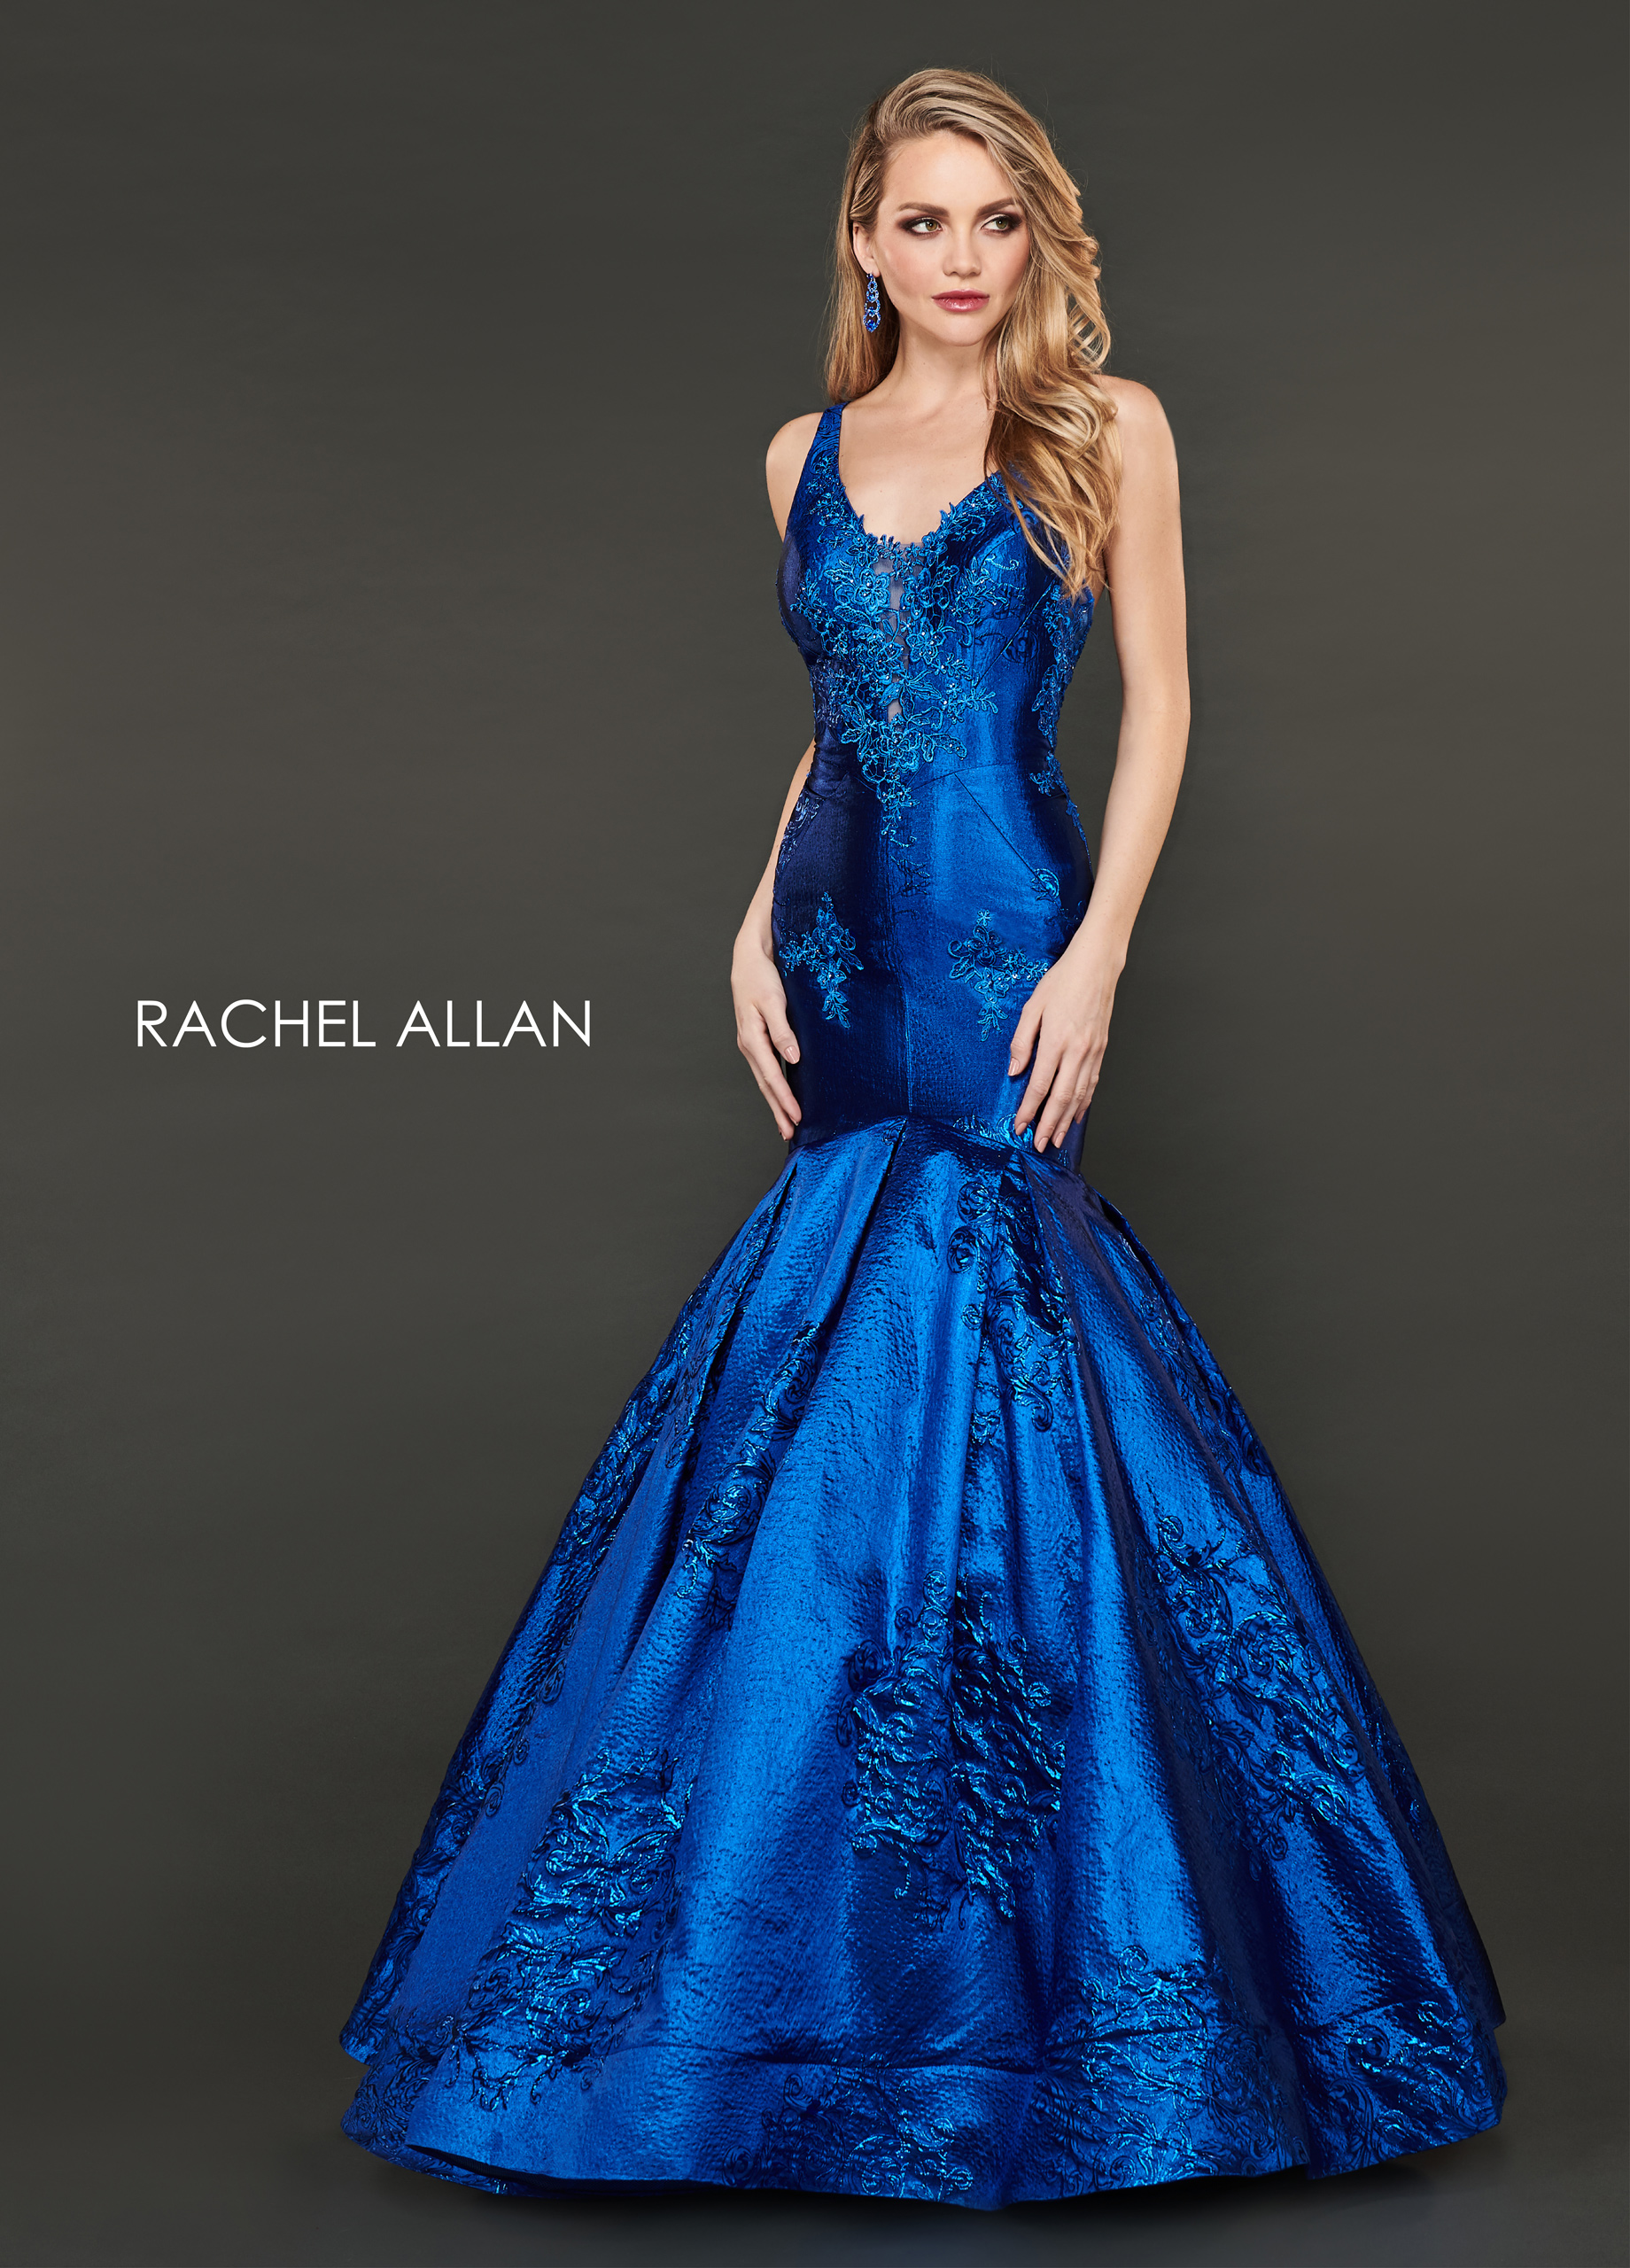 V-Neck Mermaid Couture Dresses in Royal Color